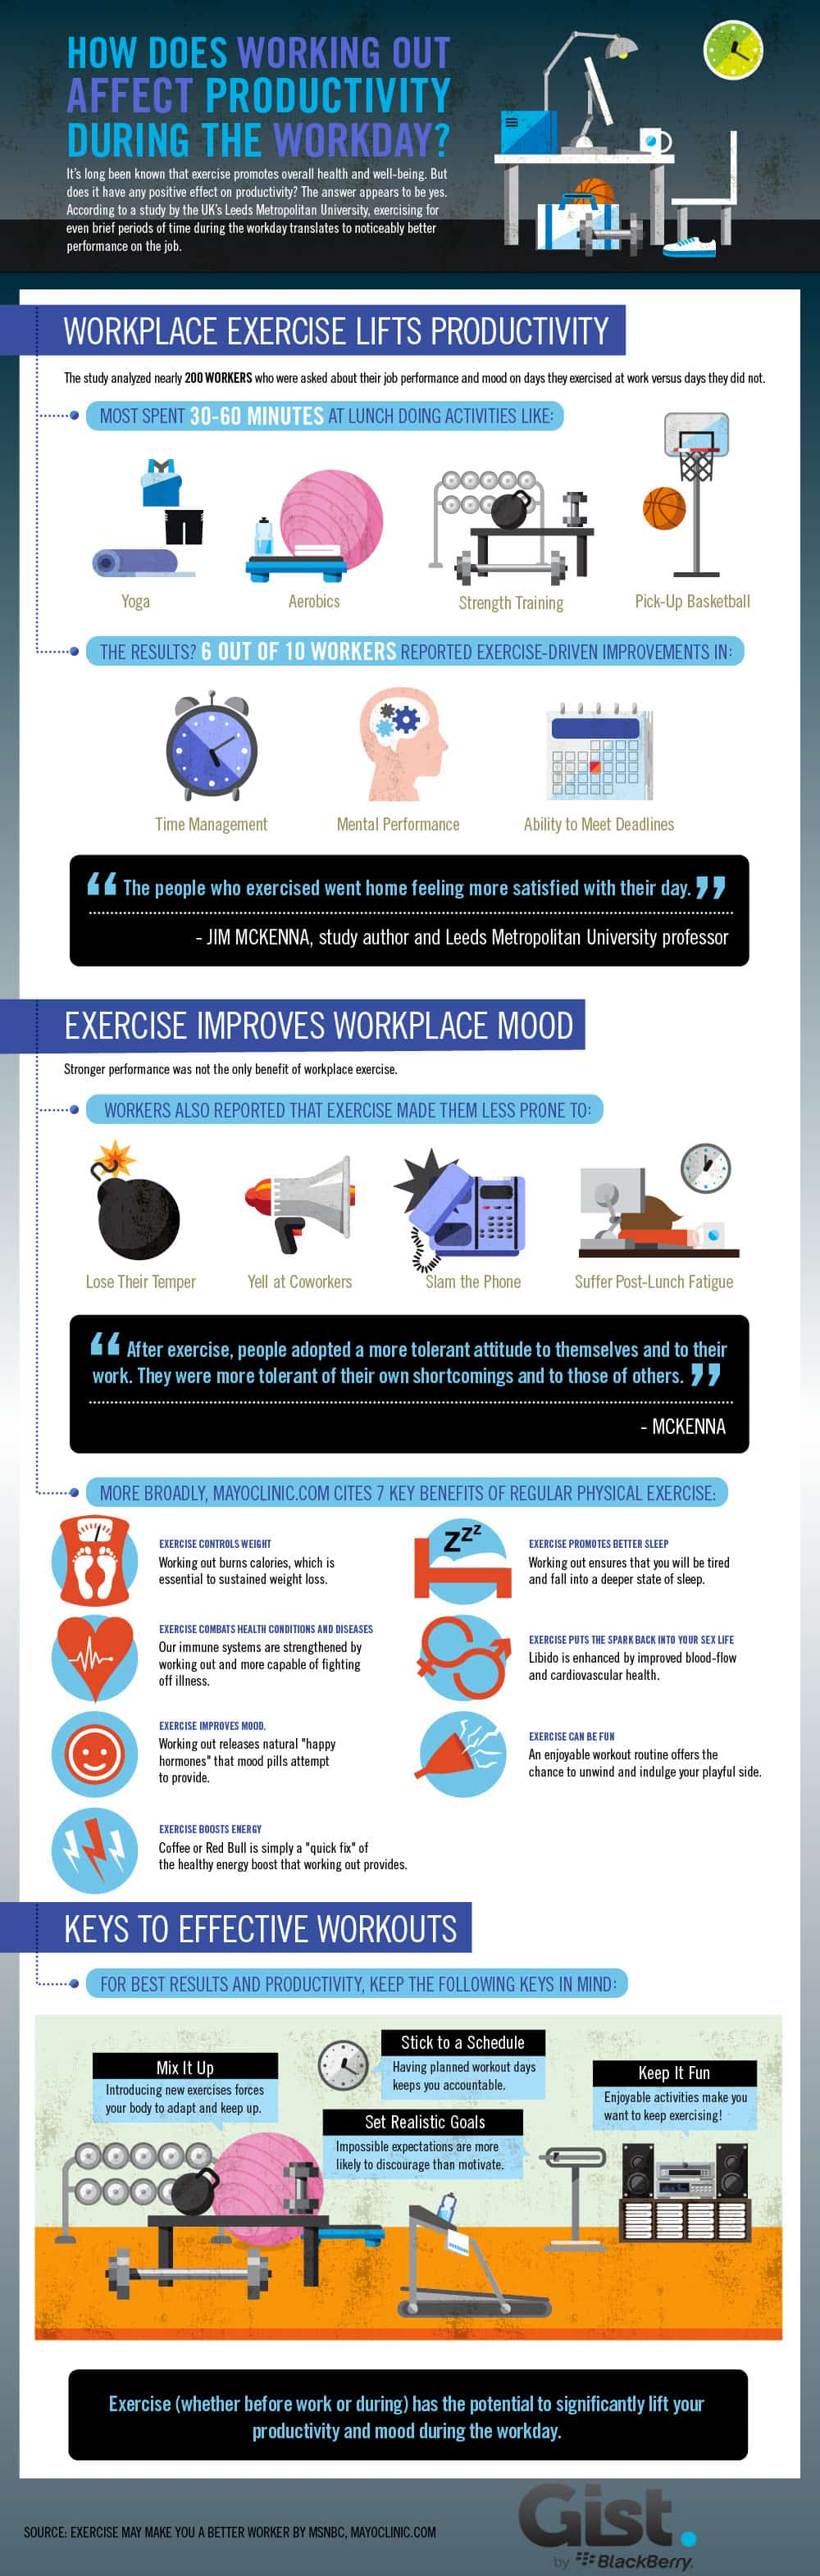 Workplace Productivity and Exercise InfoGraphic